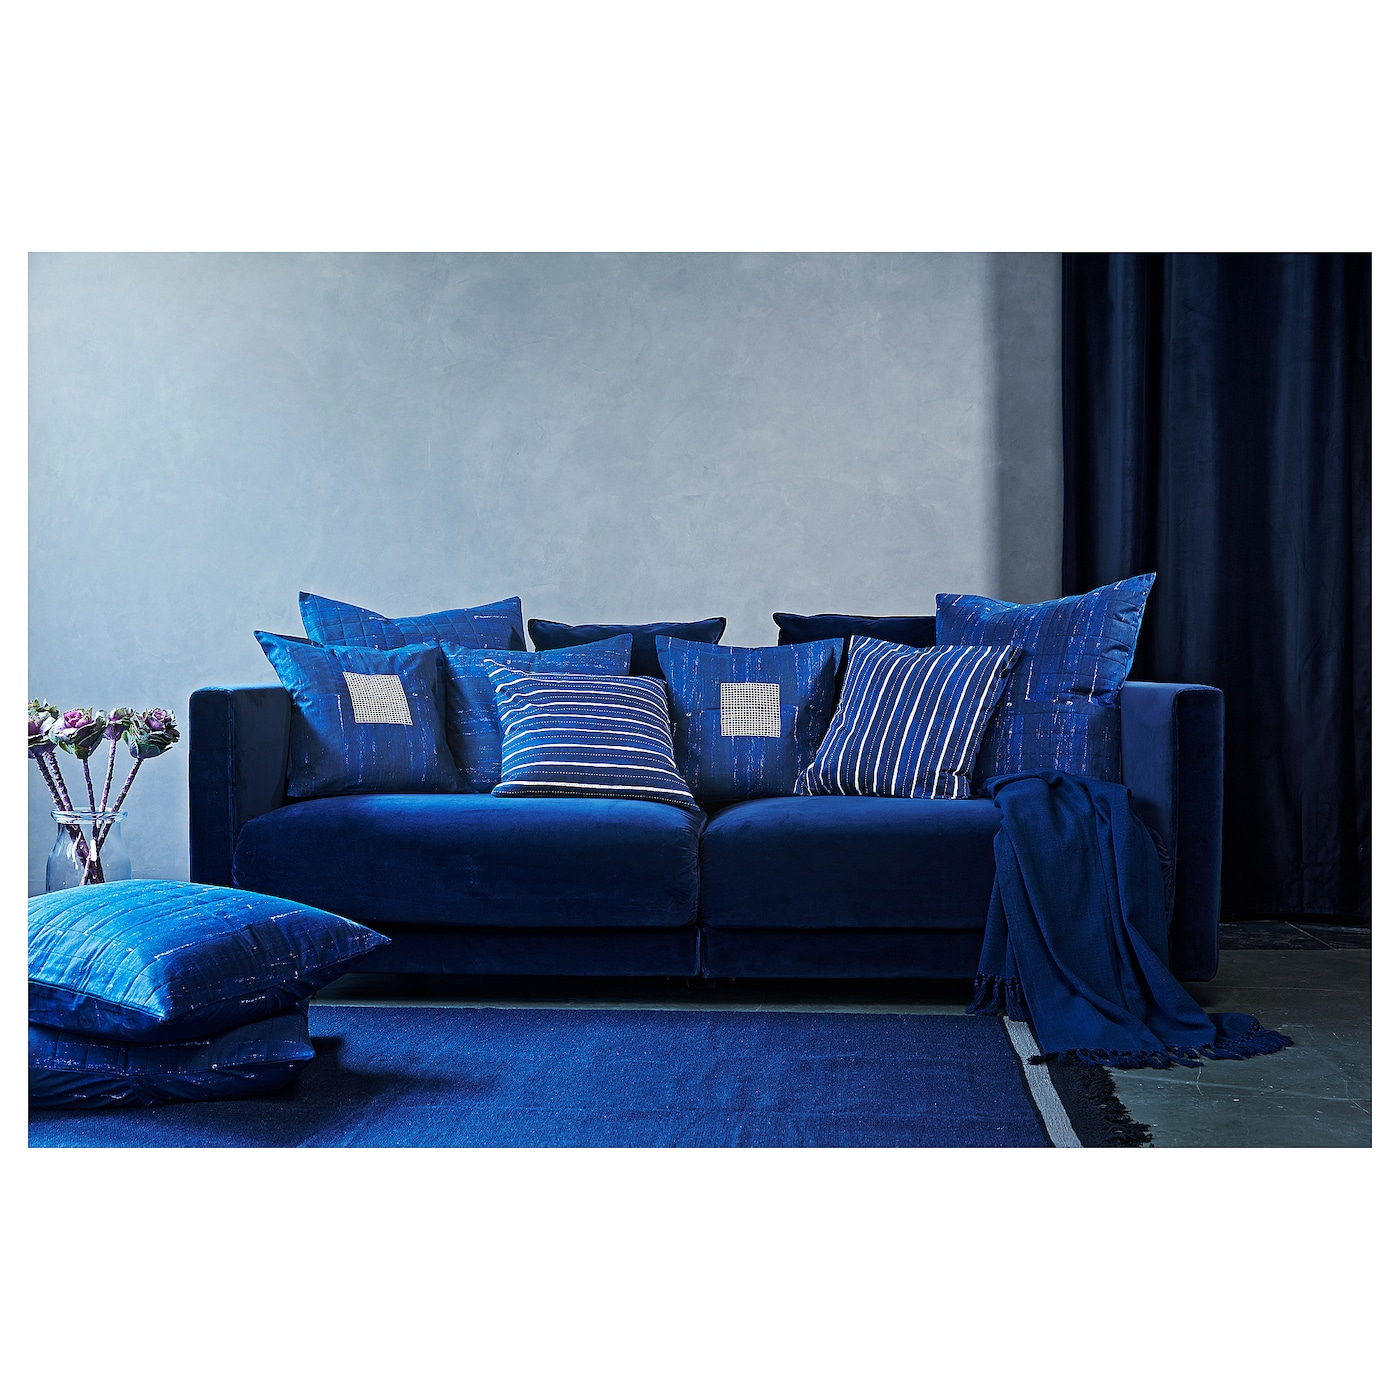 inneh llsrik housse de coussin fait main bleu 65x65 cm ikea. Black Bedroom Furniture Sets. Home Design Ideas